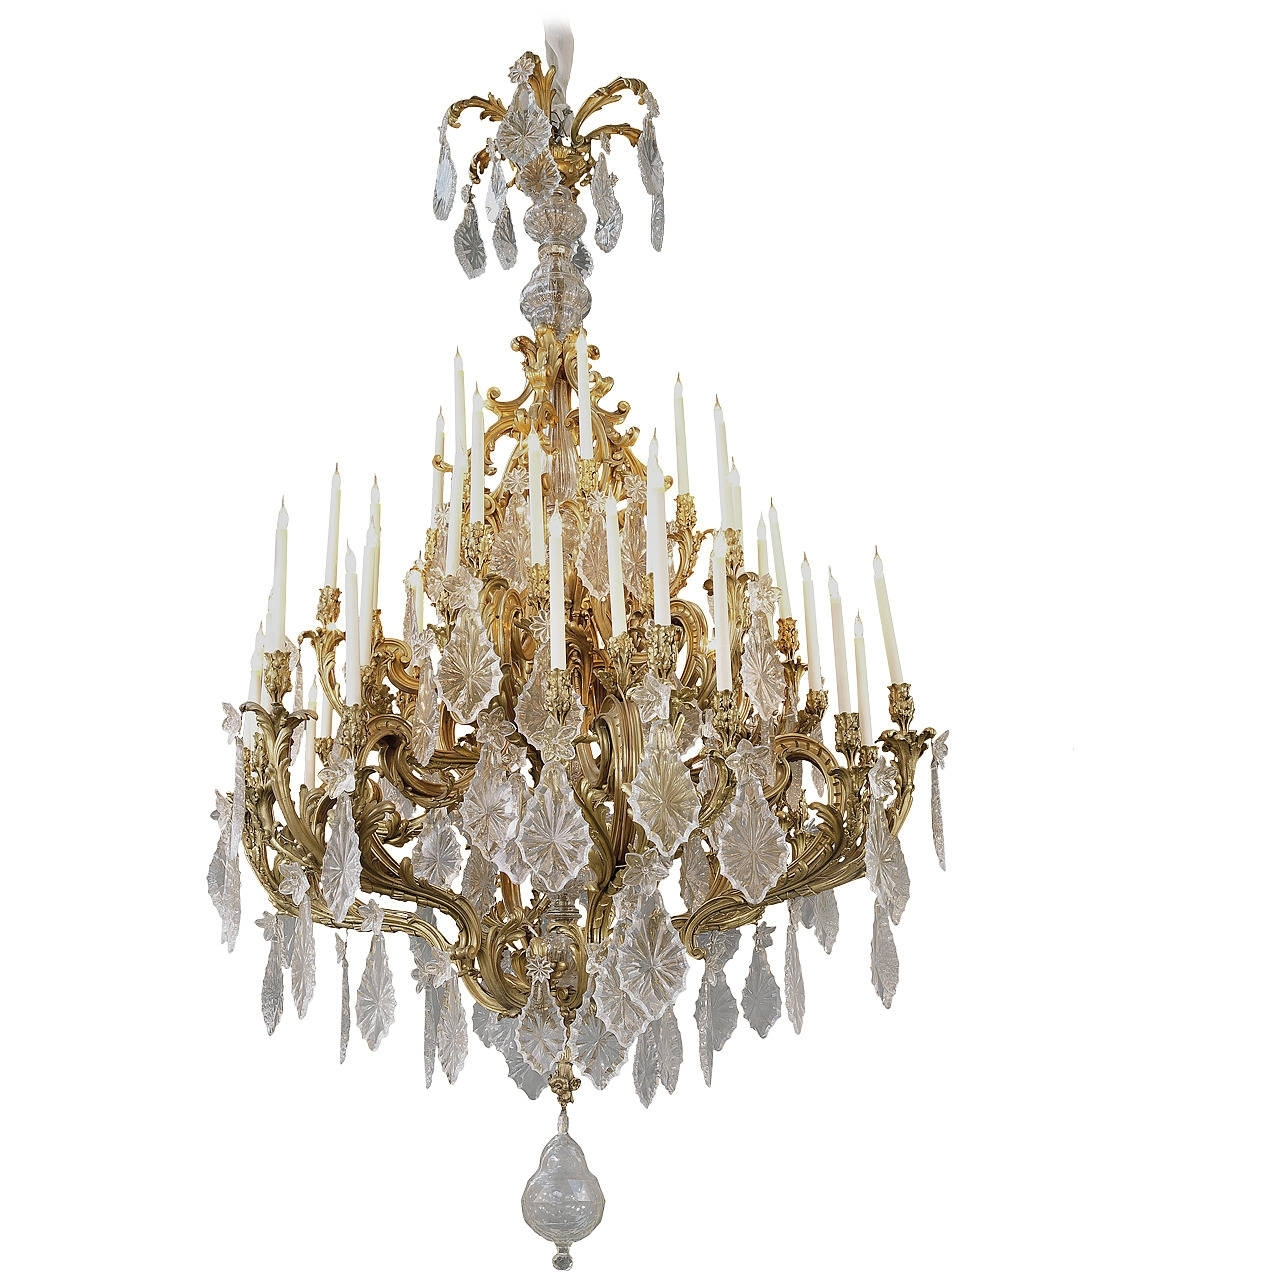 Chandelier Lamps, Big For Latest Expensive Crystal Chandeliers (View 1 of 15)